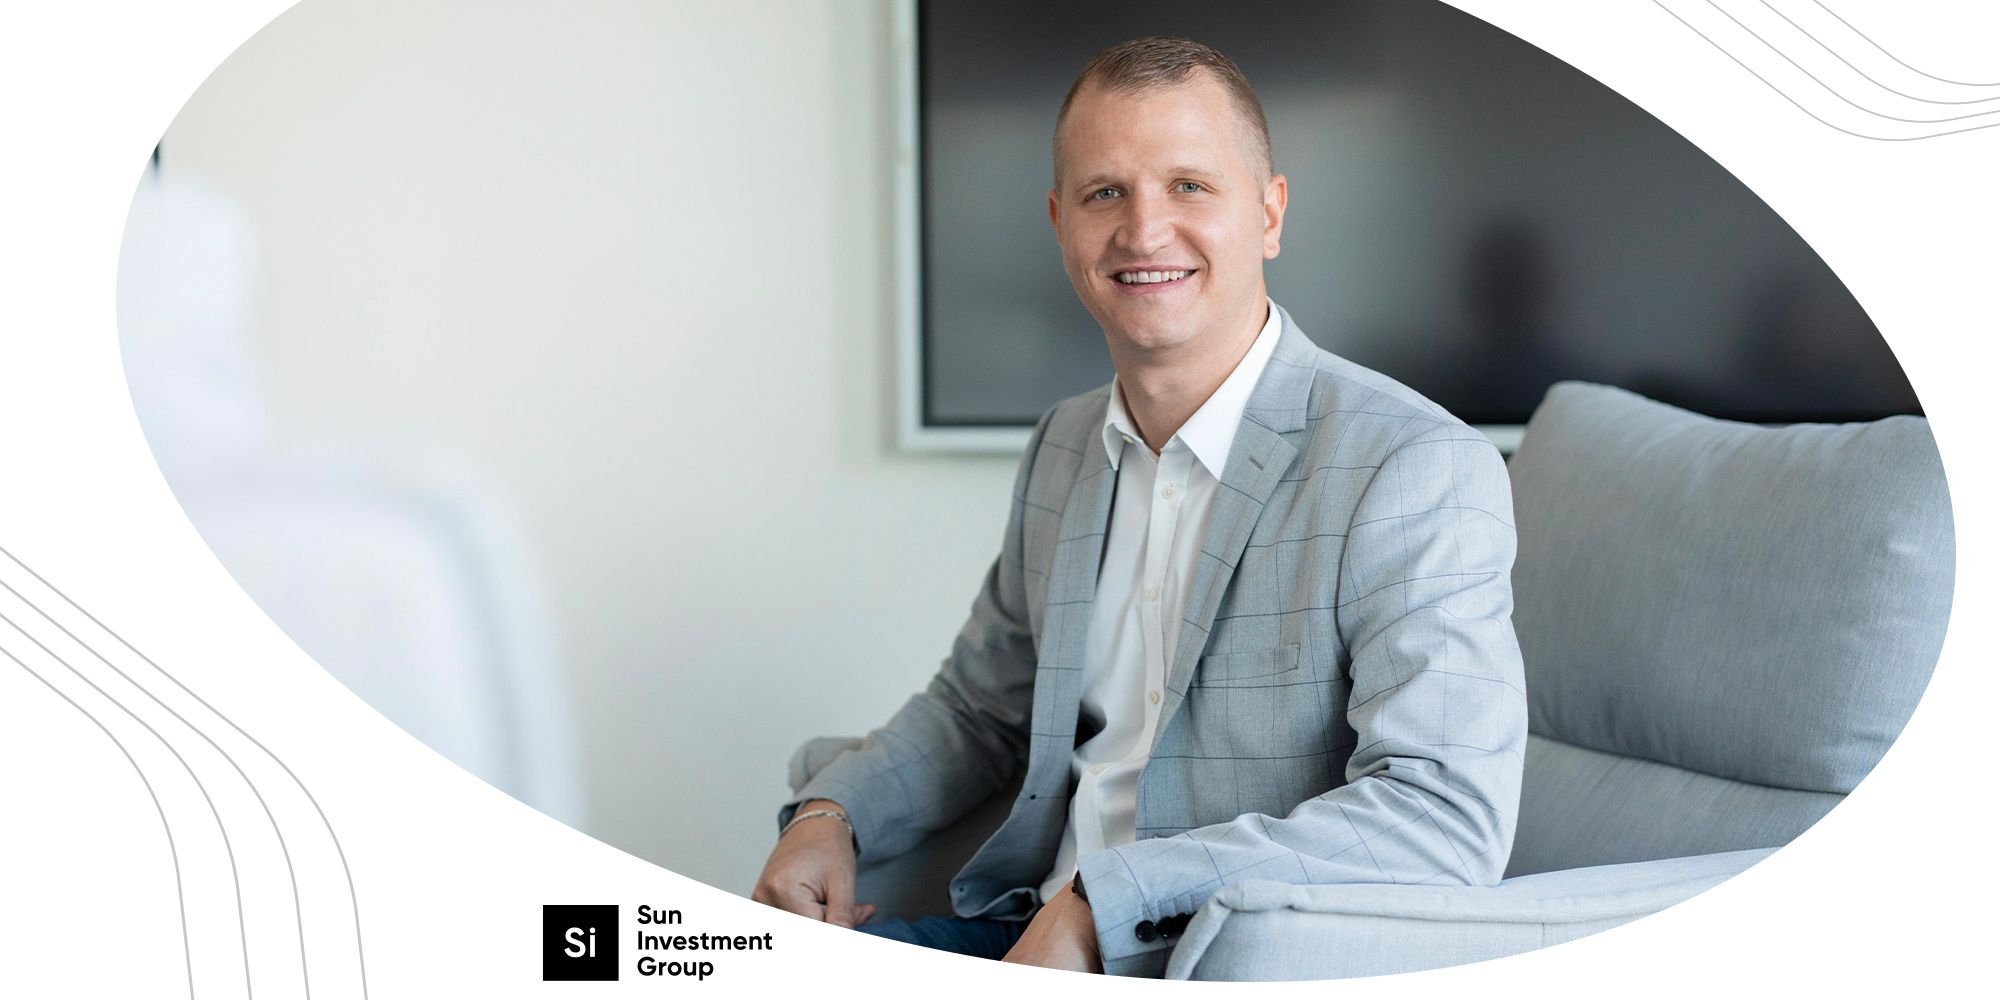 Benedikt Peters joins Sun Investment Group as the Head of Procurement